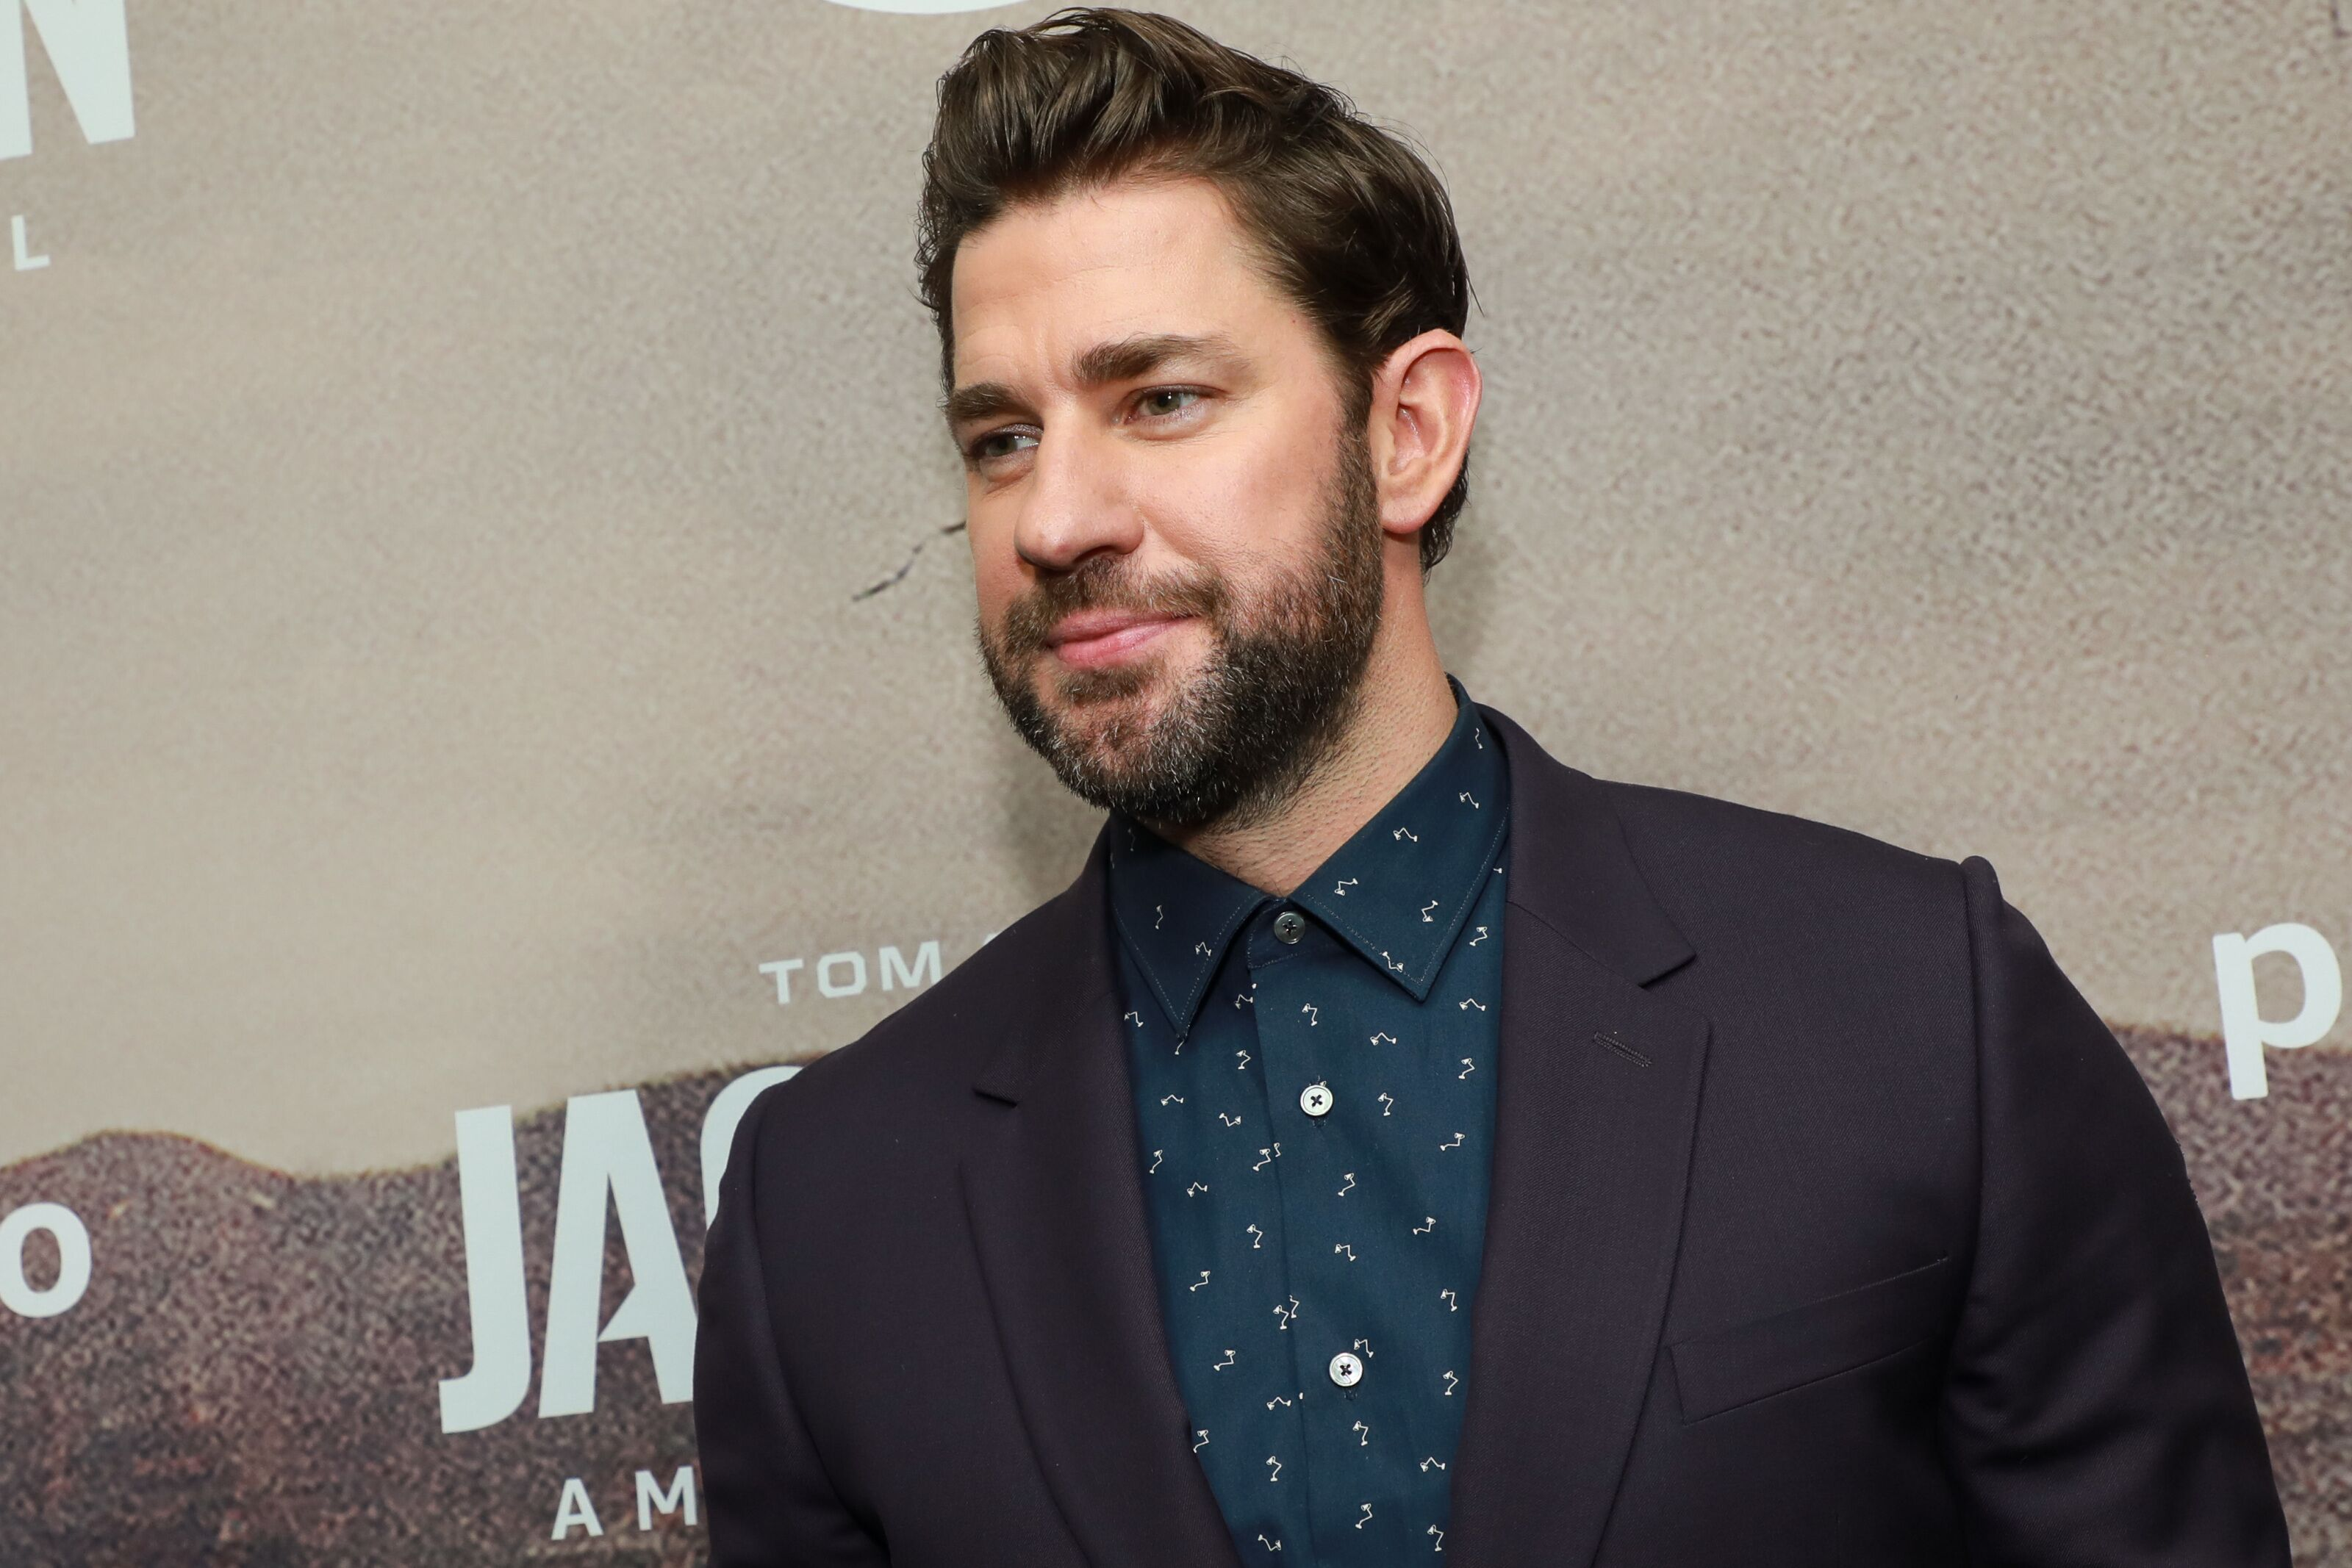 John Krasinski had a surprising encounter with Thor during his Captain America audition